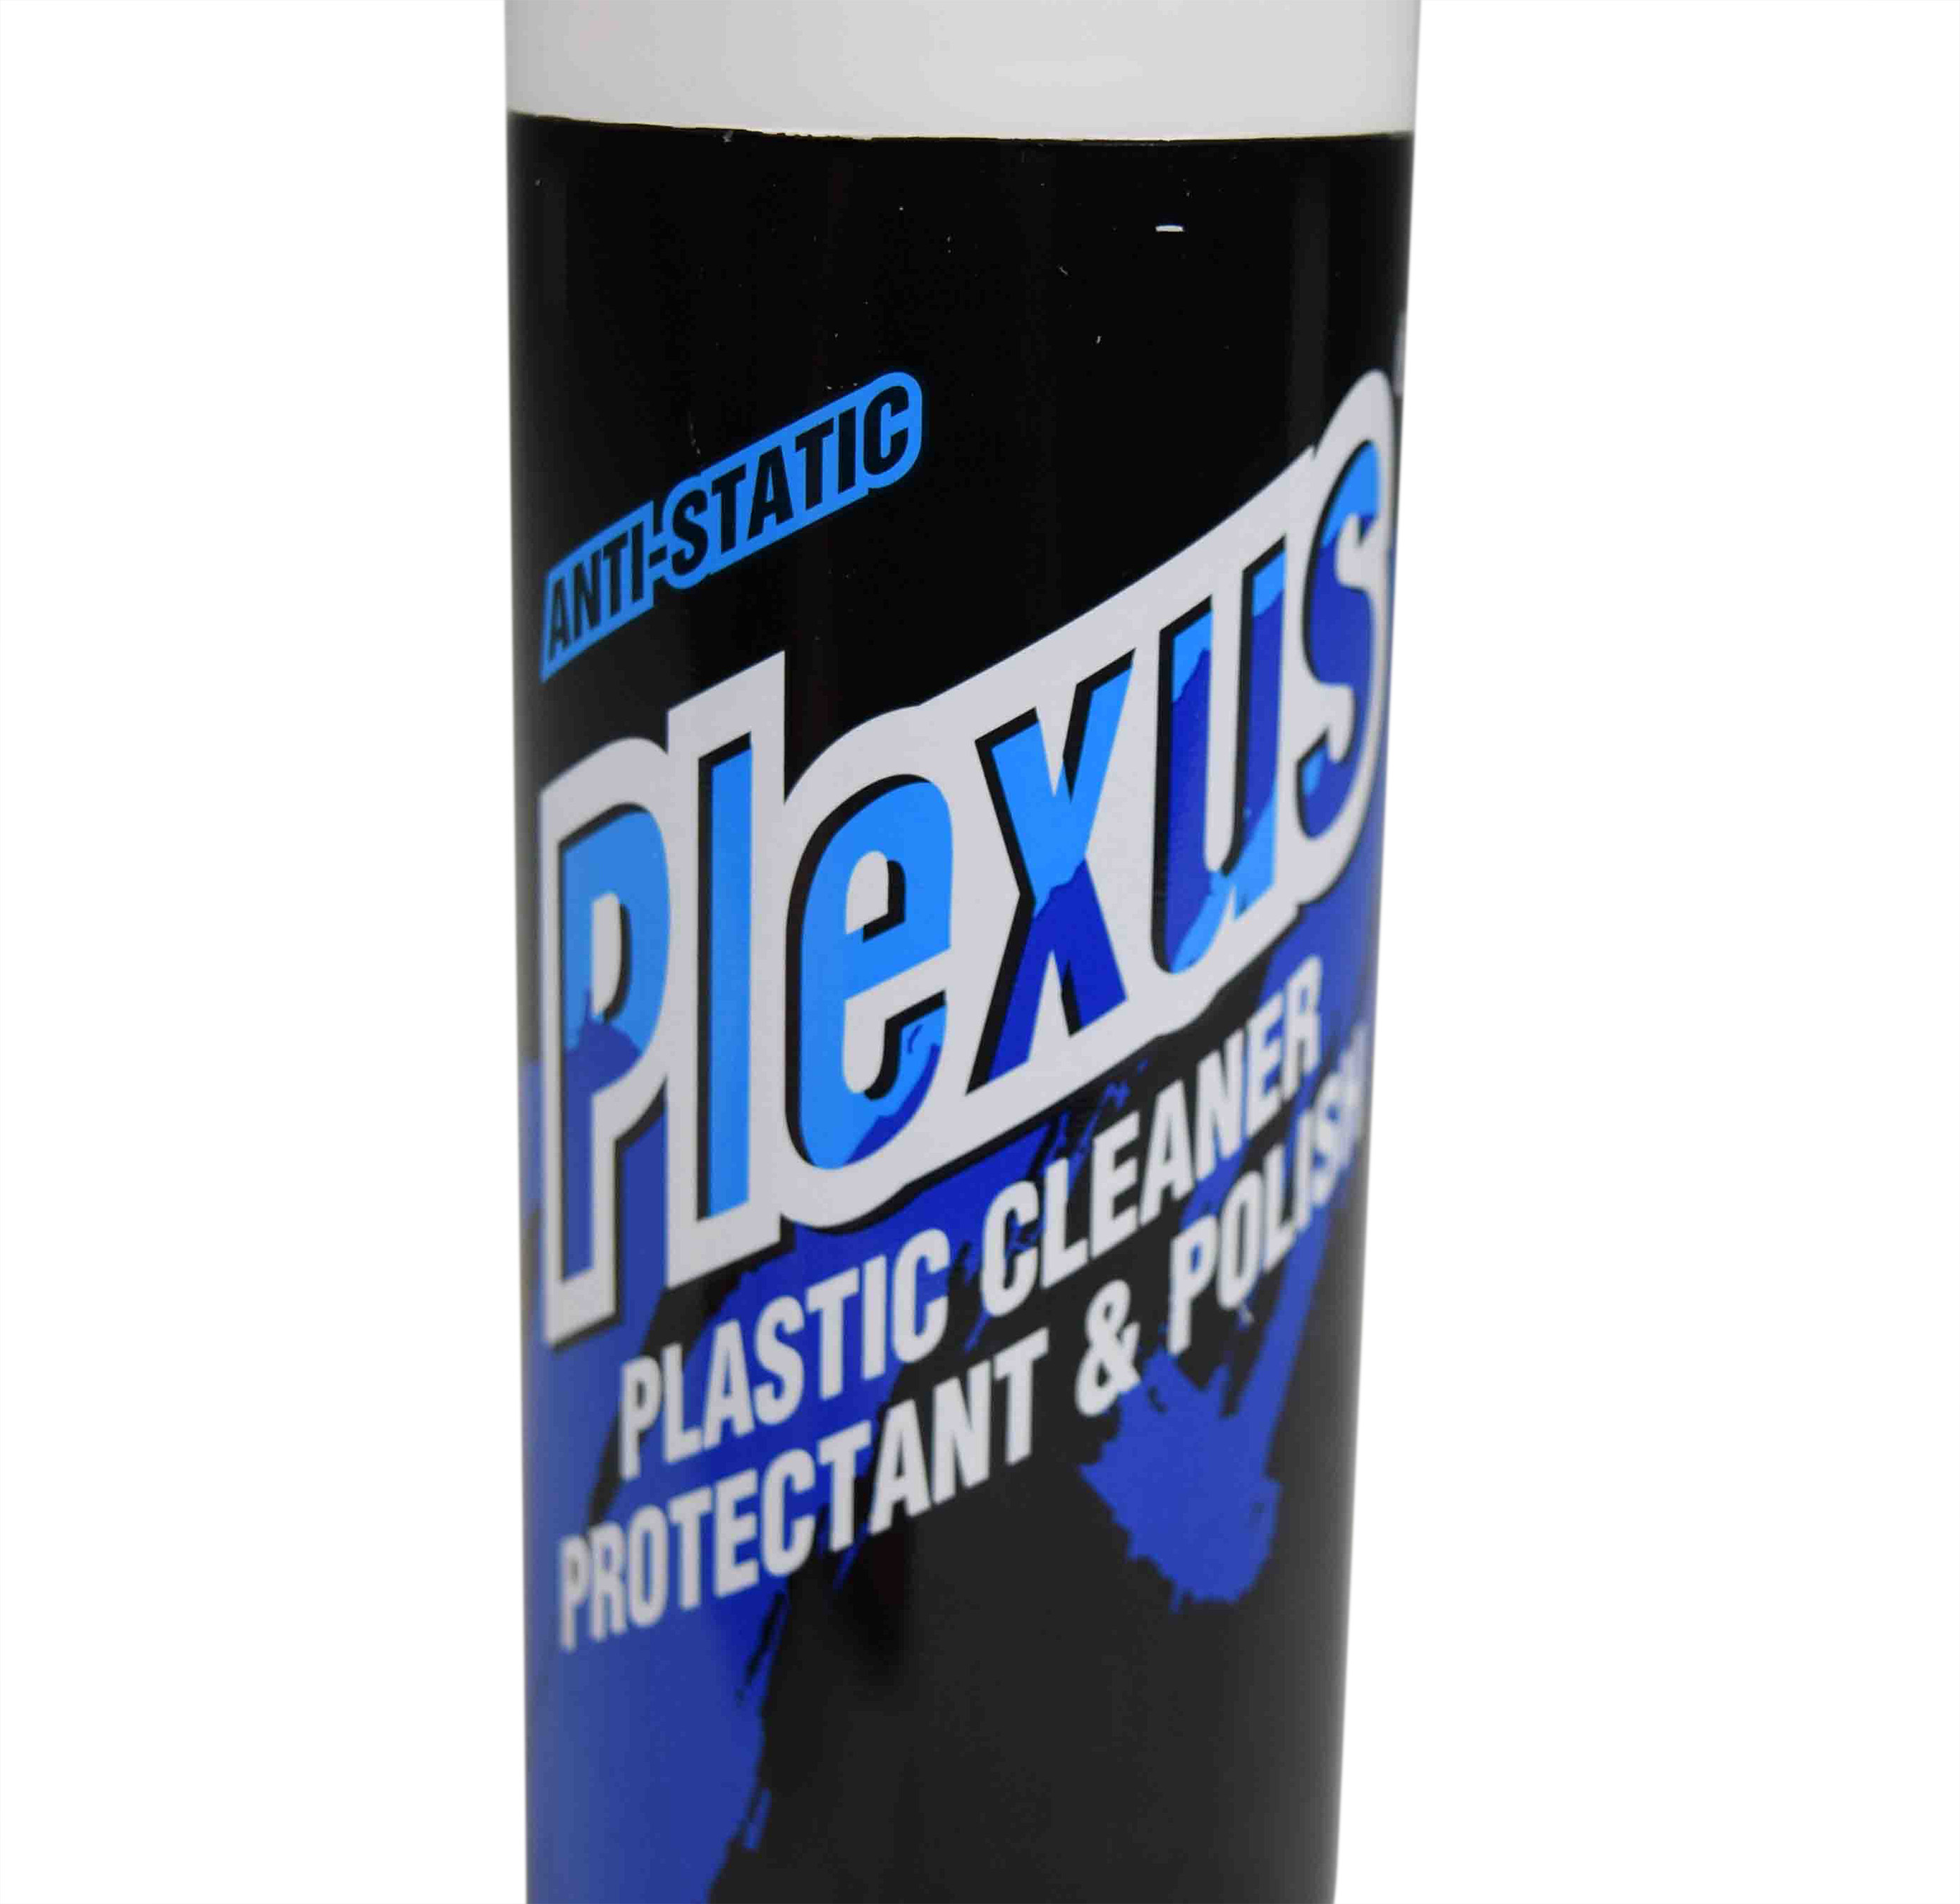 Plexus-Plastic-Cleaner-Protectant-Polish-7oz-Can-2-Pack-MADE-In-the-USA-image-3